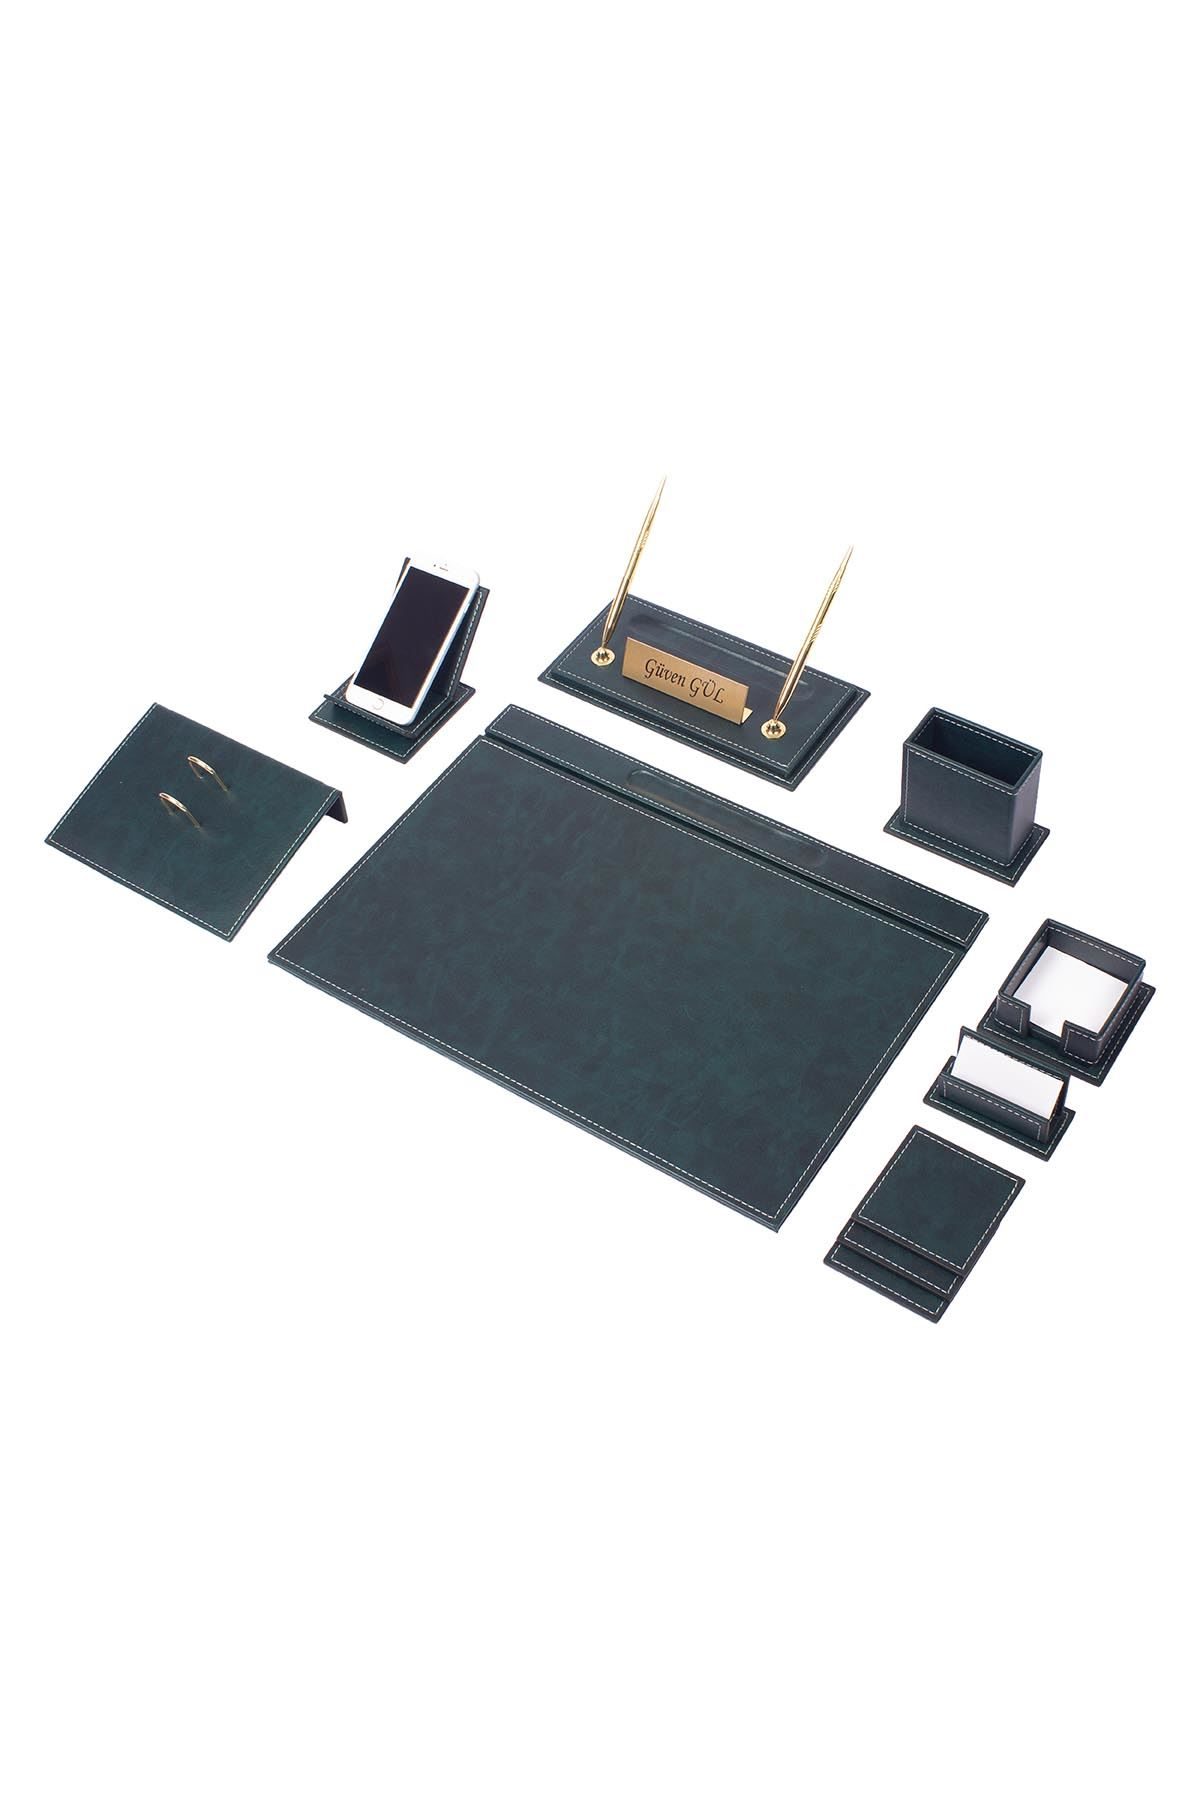 Vega Leather Desk Set Green 12 Accessories